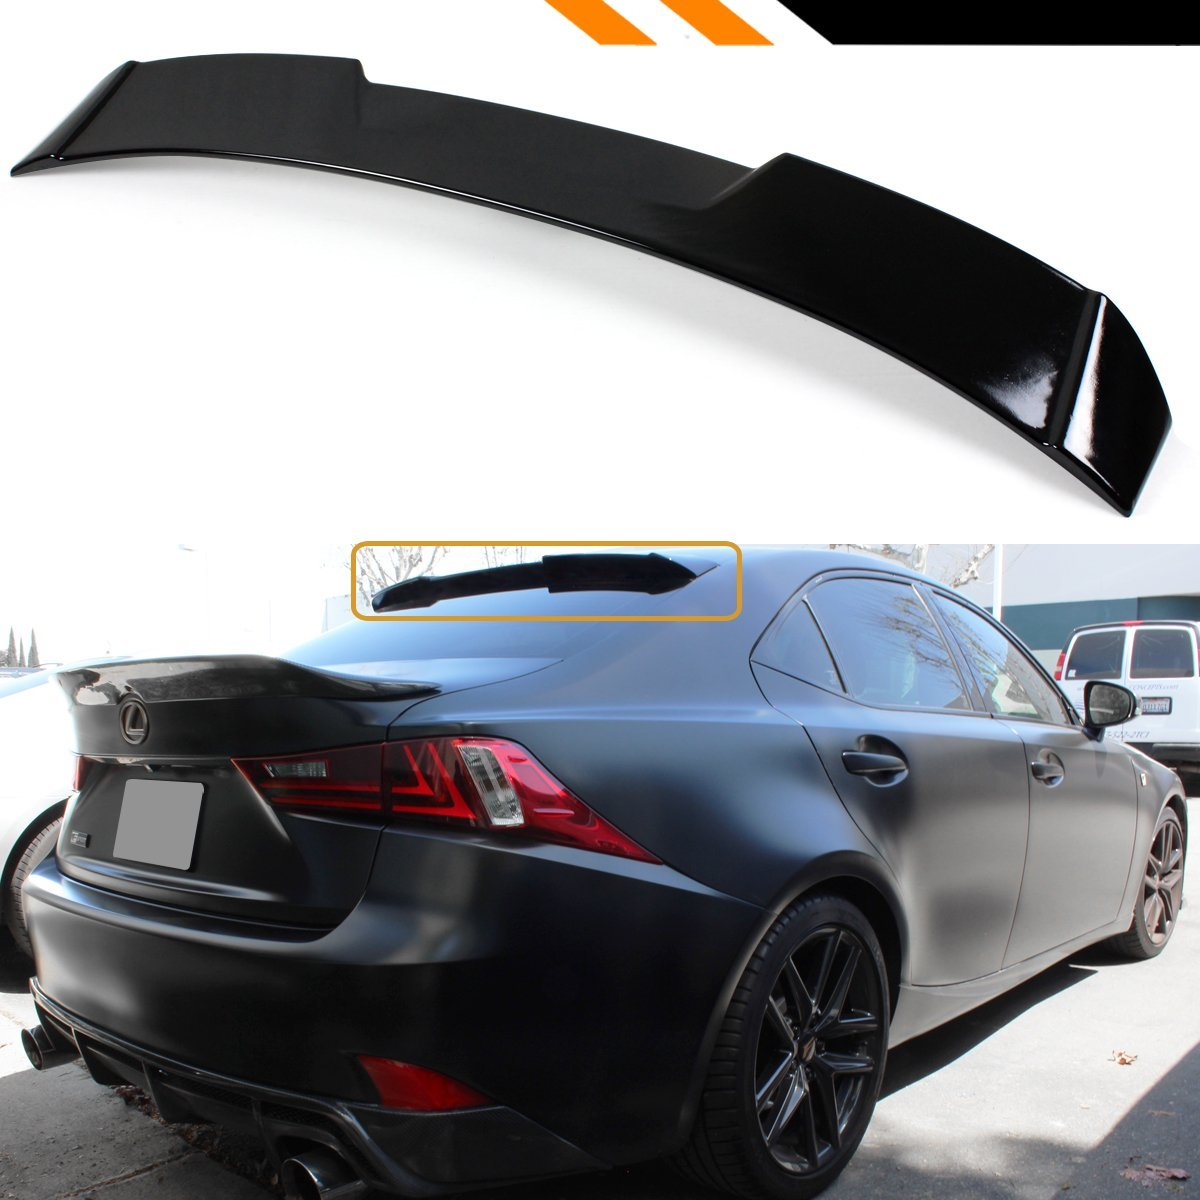 Cuztom Tuning Fits for 2014-2018 Lexus IS250 IS350 IS200T VIP Style Rear Roof Window Spoiler Wing